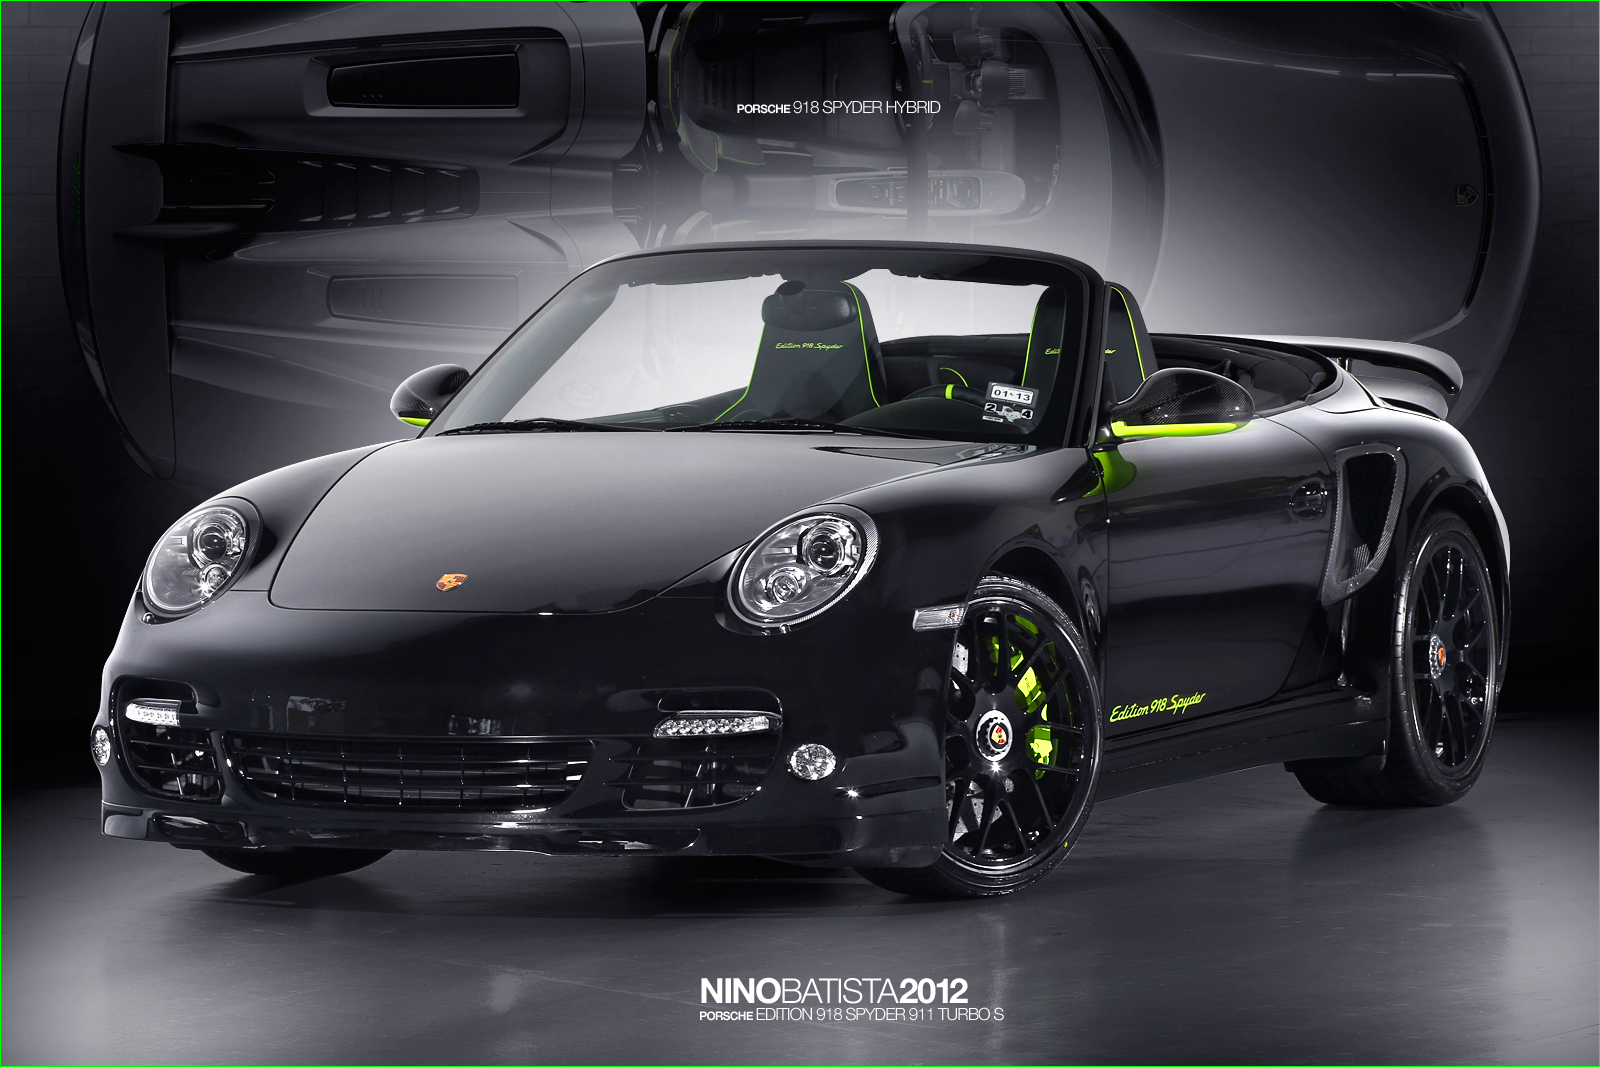 2012 porsche 911 turbo s edition 918 spyder price specs autos post. Black Bedroom Furniture Sets. Home Design Ideas